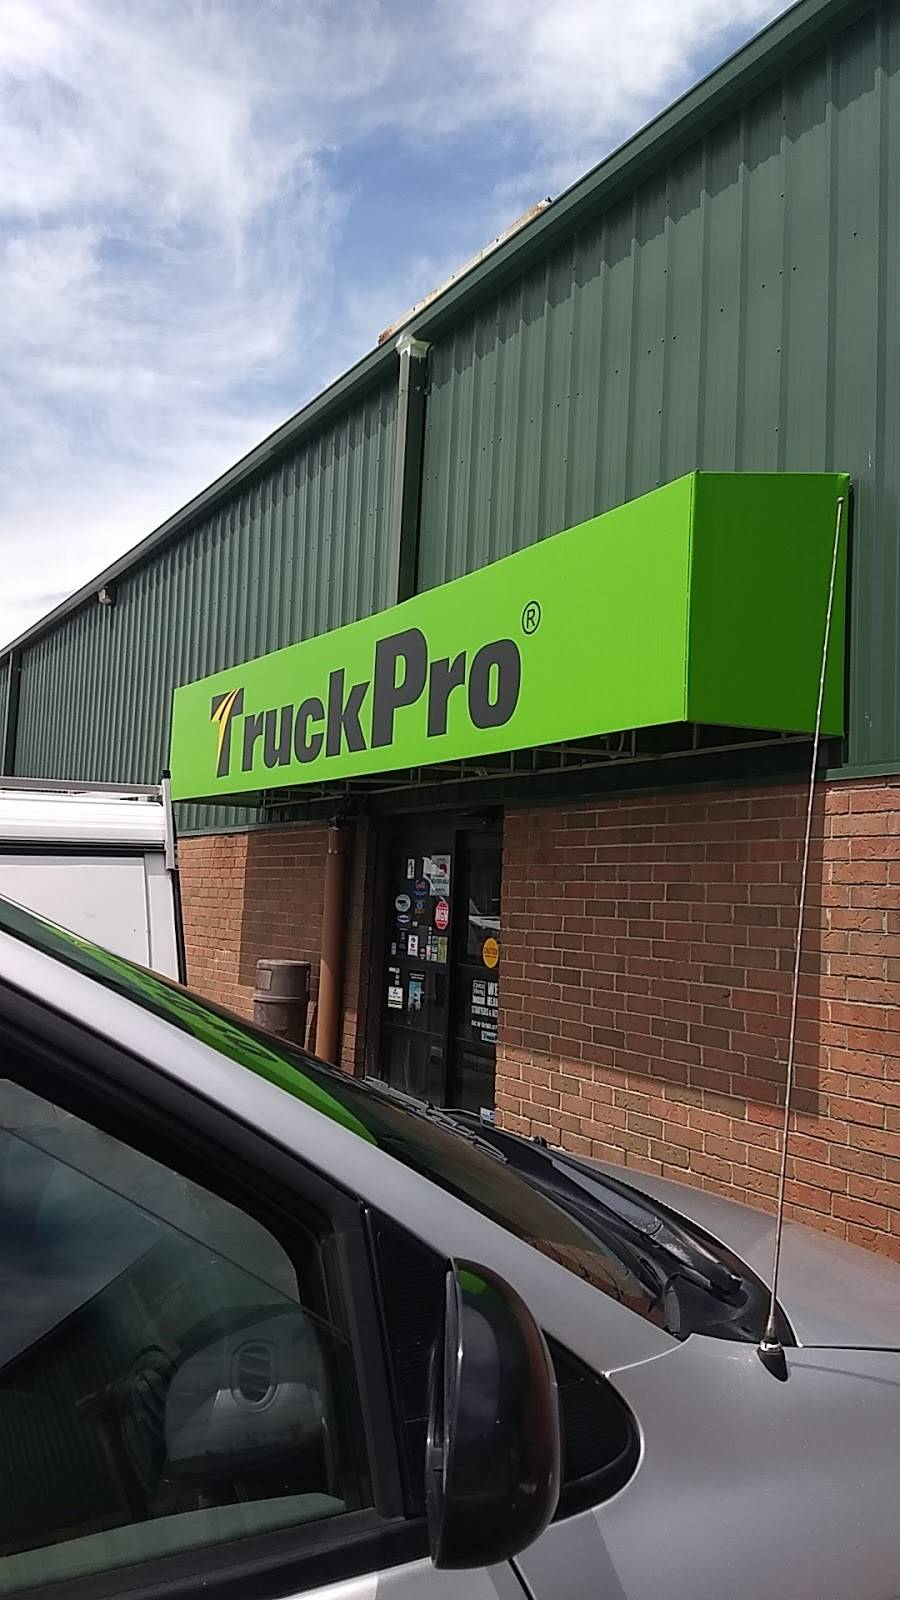 TruckPro - car repair  | Photo 8 of 9 | Address: 5725 Canal Rd, Valley View, OH 44125, USA | Phone: (216) 447-0000